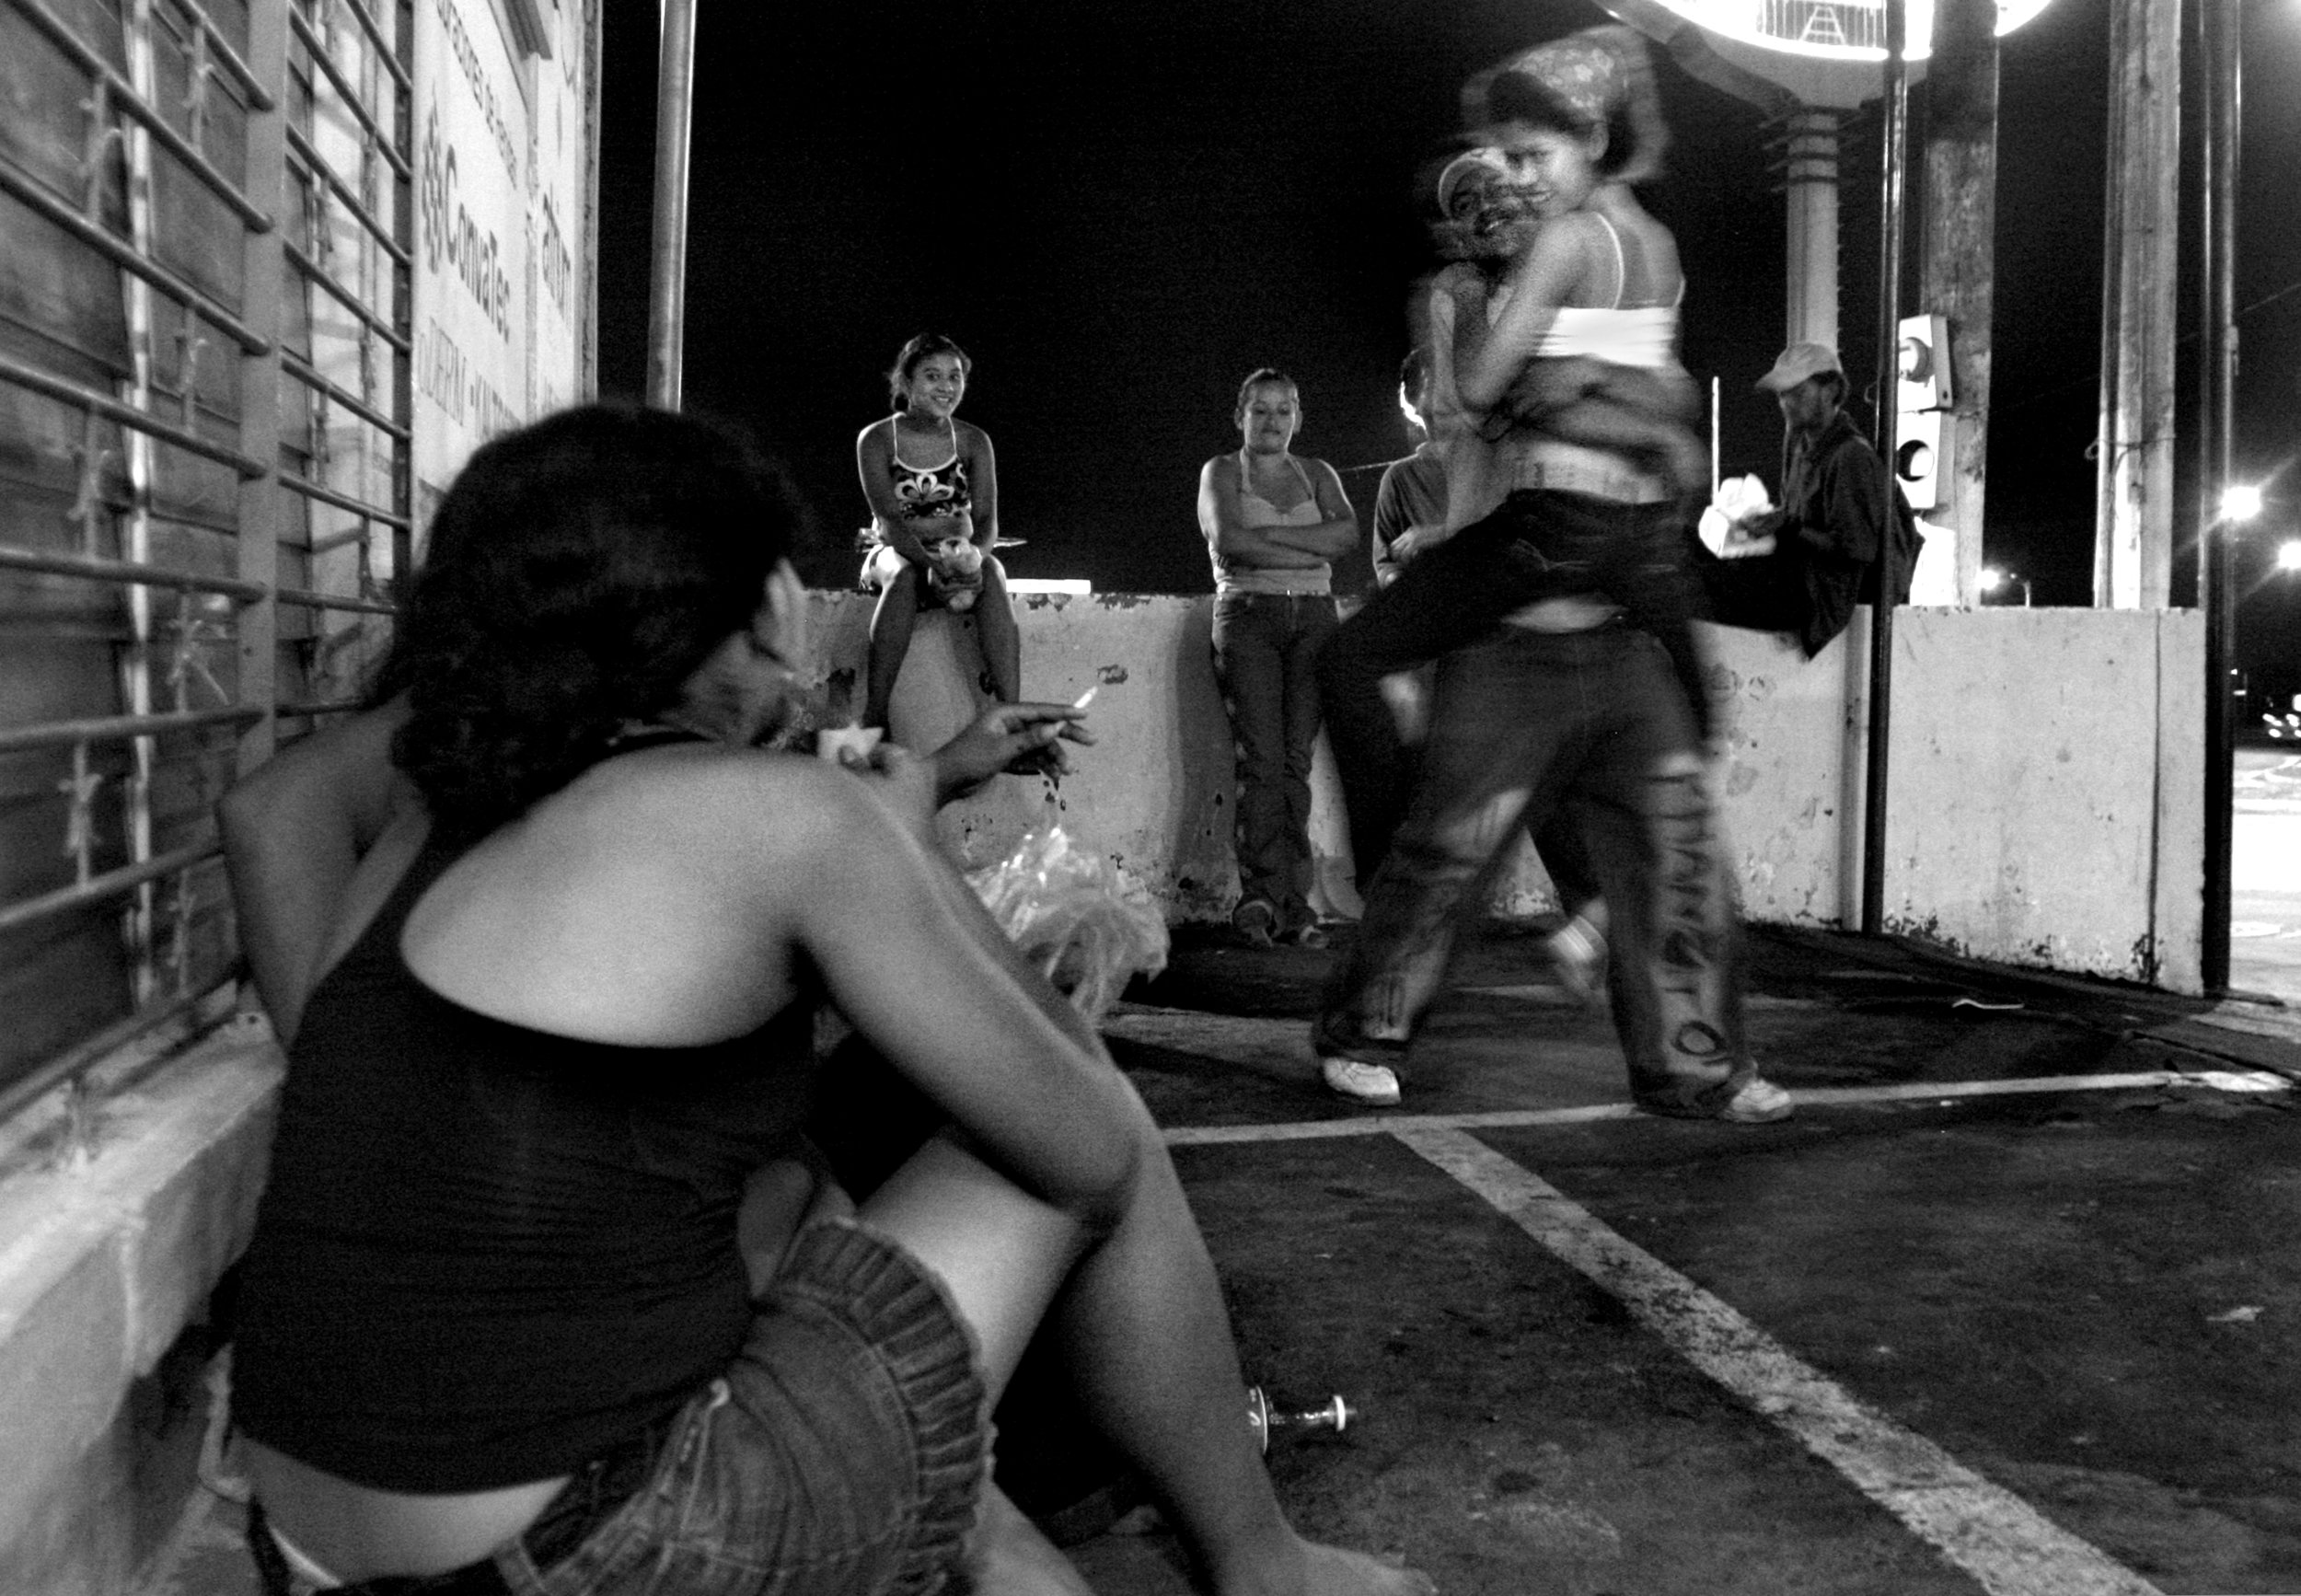 The girls joke around with a group of guys along a main street in downtown Managua.